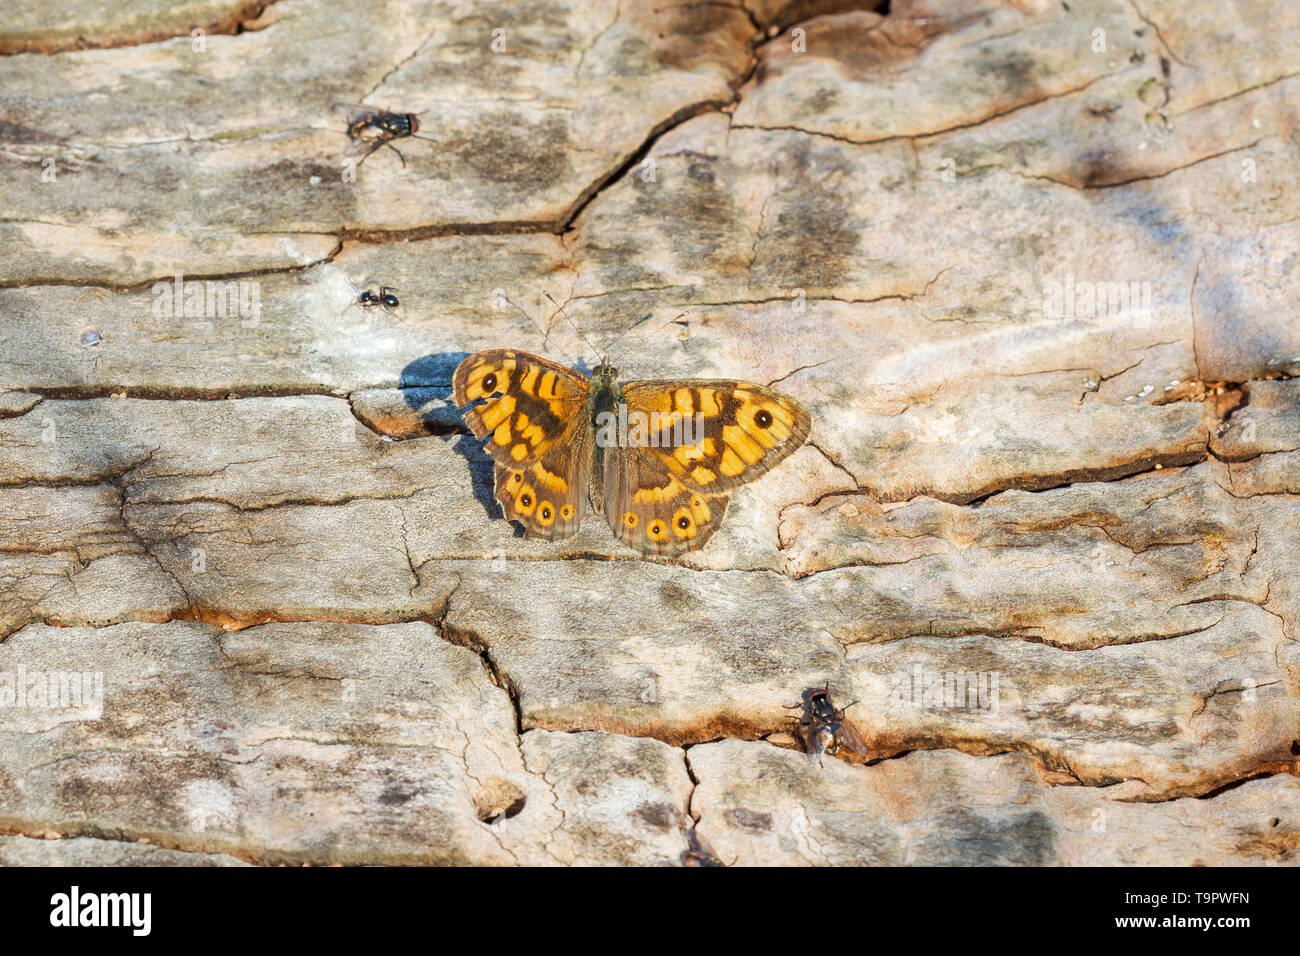 Wall Brown butterfly Lasiommata megera resting on wood in bright sunlight - Stock Image